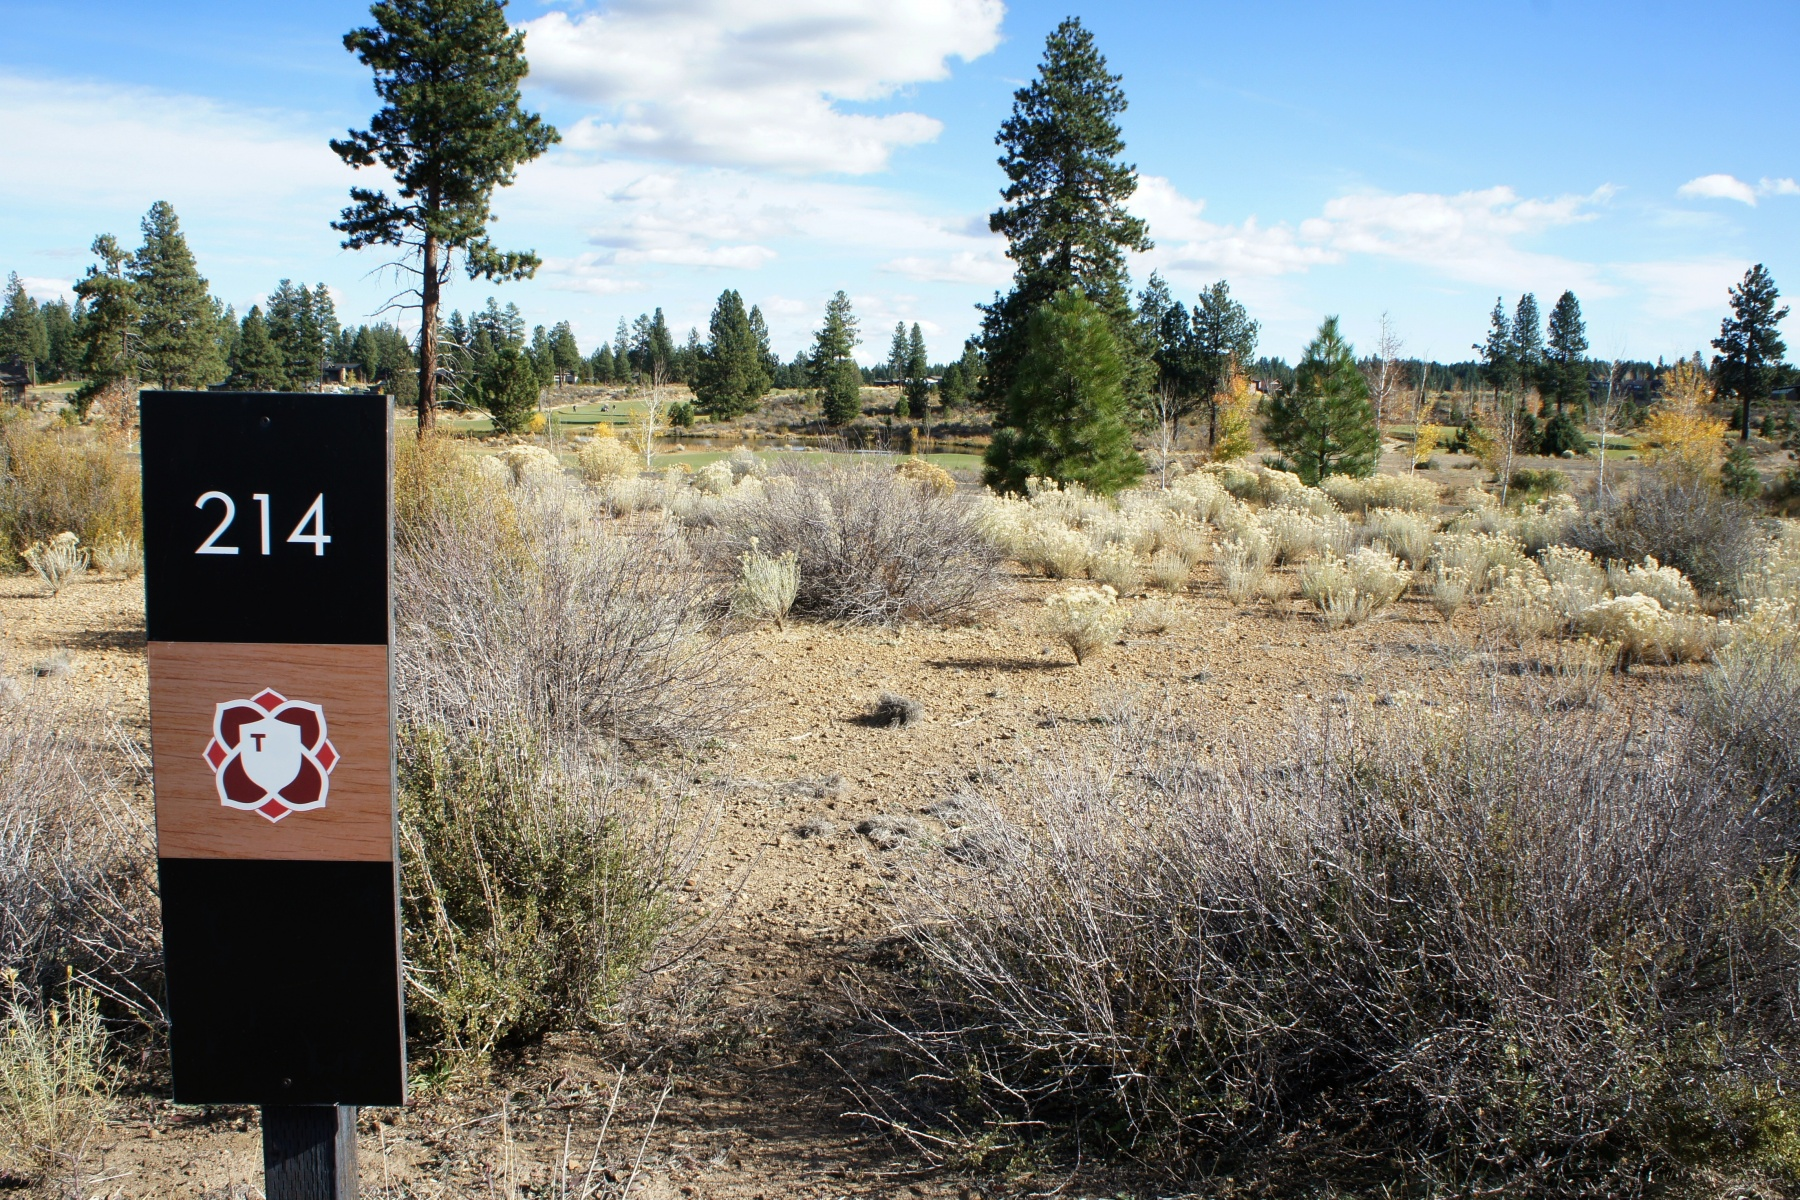 Land for Sale at Level Tetherow Homesite 0 TBD Hardin Martin Ct Lot 214 Bend, Oregon, 97702 United States